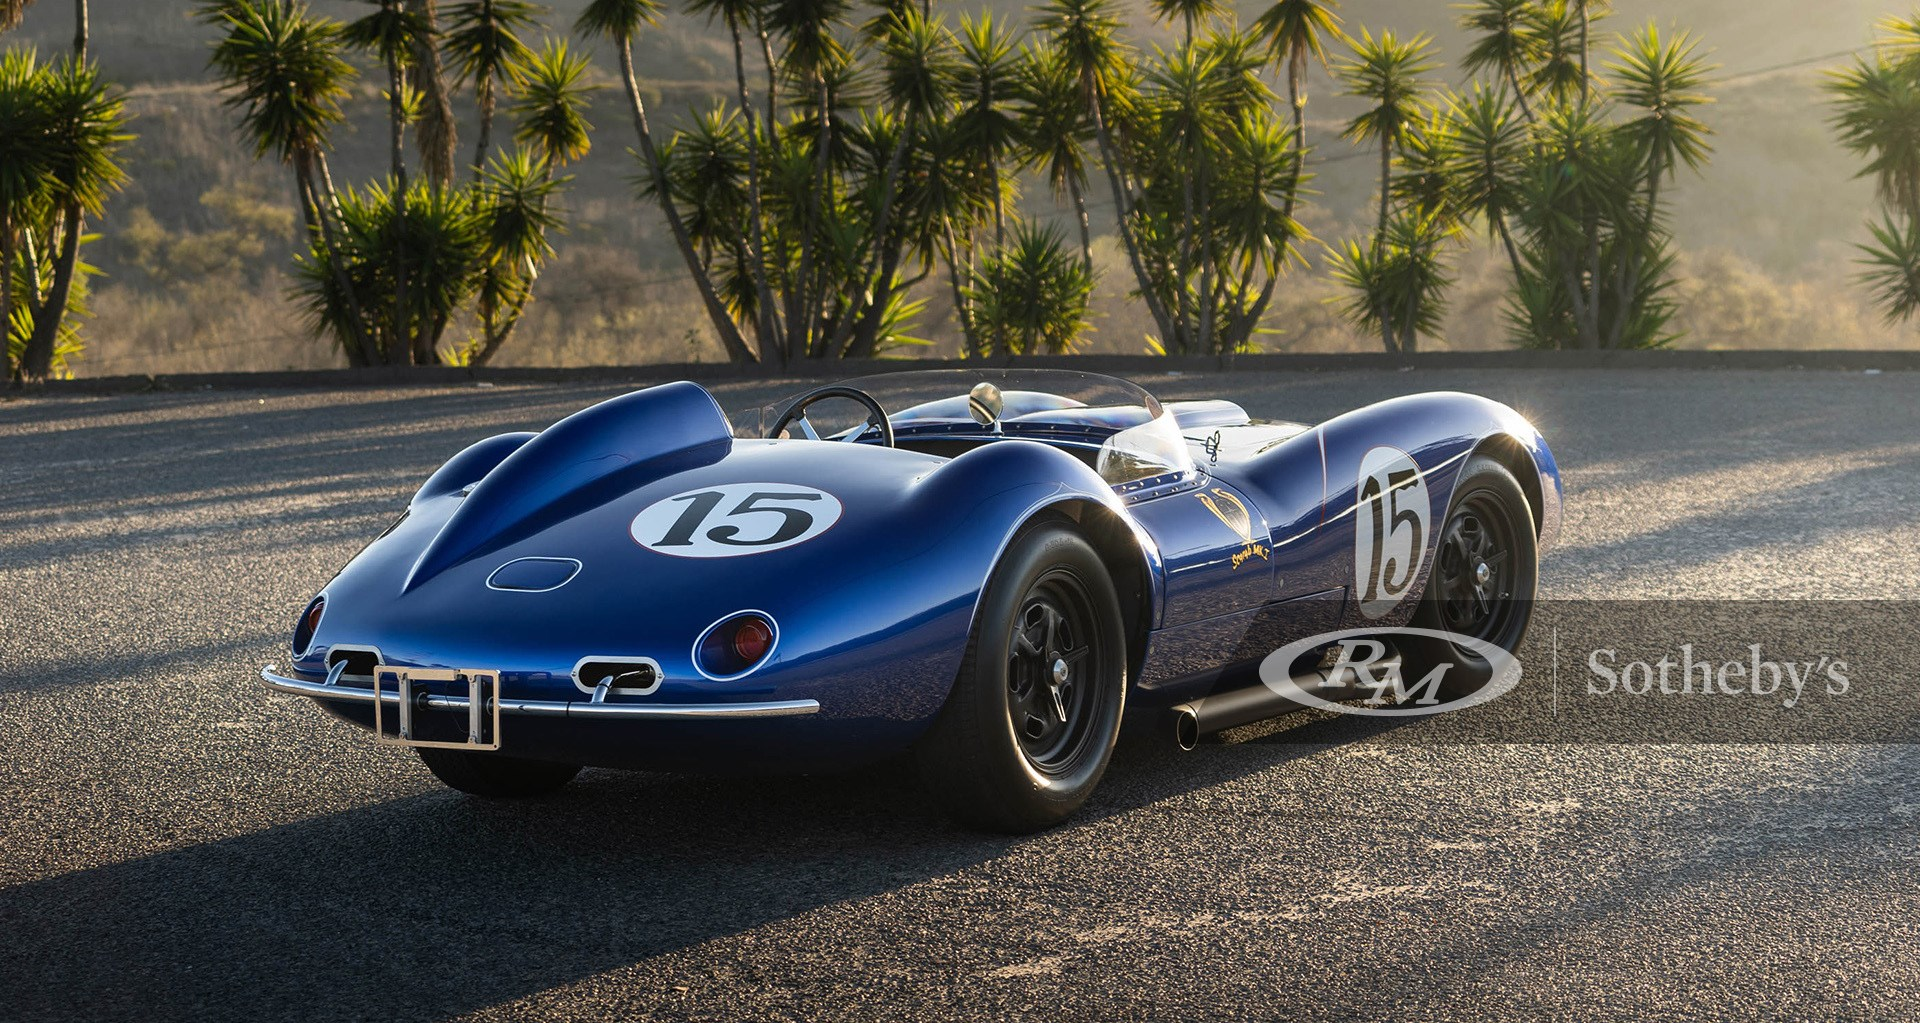 Scarab racing blue 1958 Scarab Reproduction available at RM Sotheby's Online Only Open Roads February Auction 2021